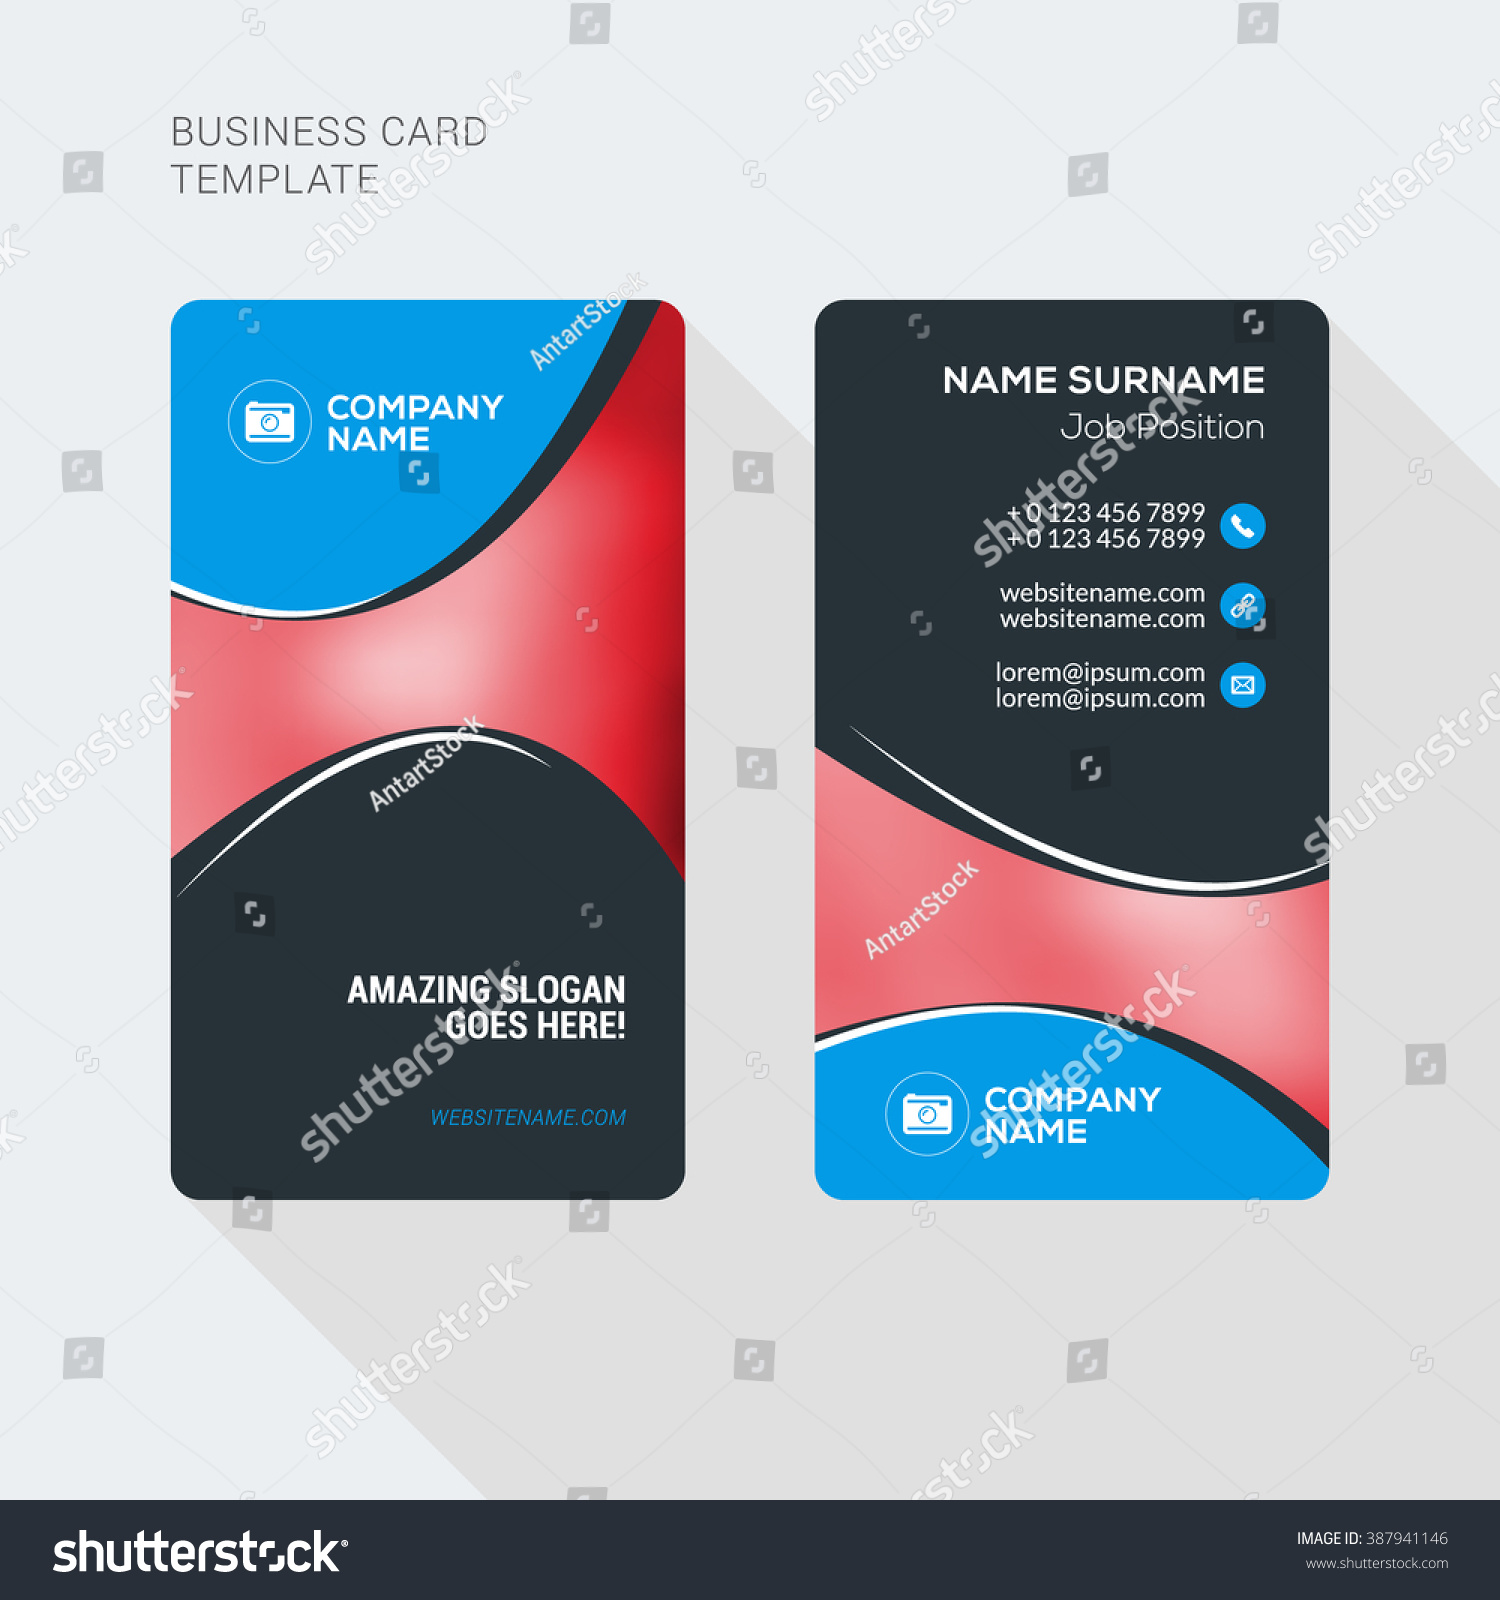 two sided business cards - Fieldstation.co